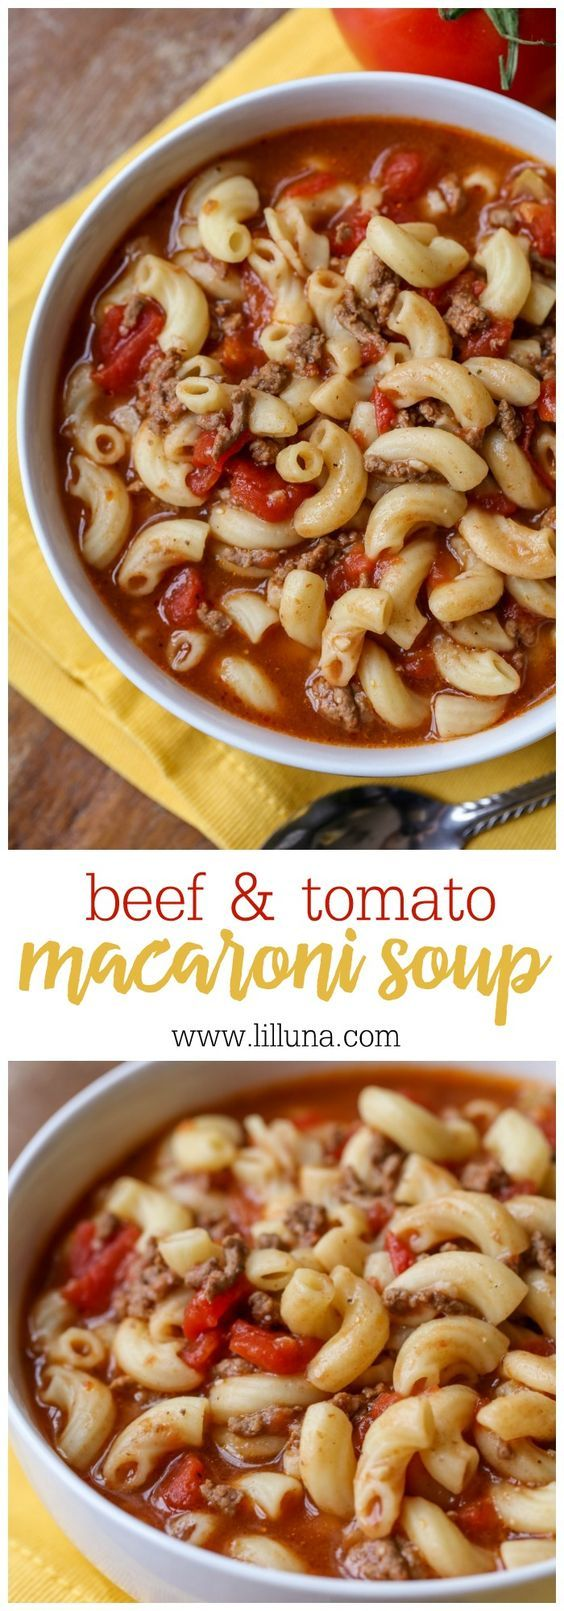 Beef & Tomato Macaroni Soup - a hearty soup full of hamburger, tomatoes, macaroni, and more! Worcestershire sauce combined with brown sugar makes for a perfectly sweet and savory flavor that is irresistible!!